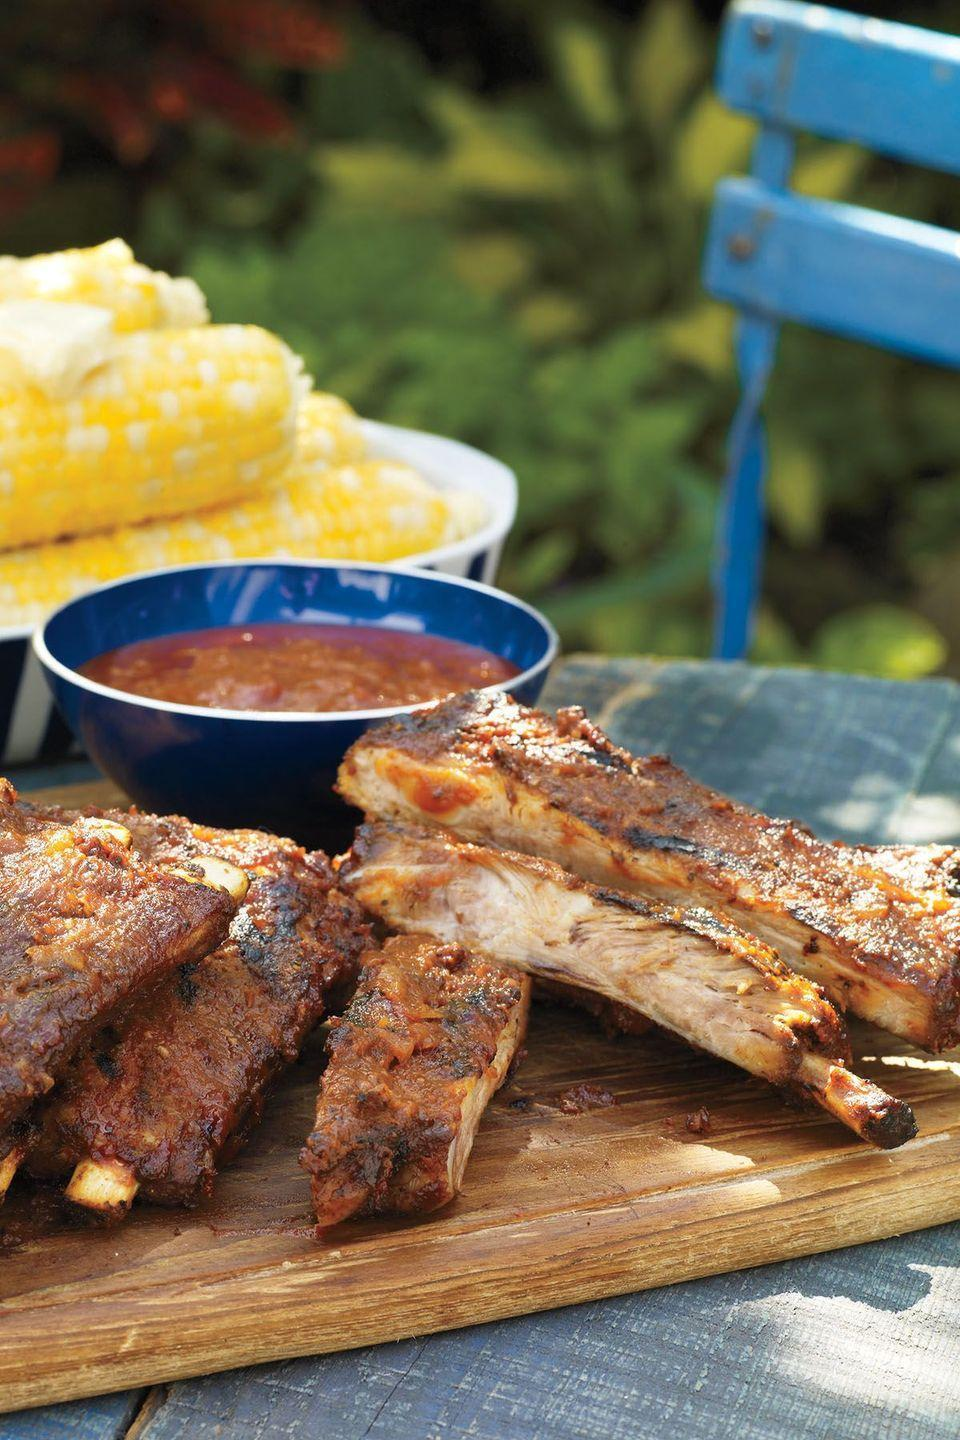 """<p>Forget store-bought BBQ sauce. You can make your own with apricot, honey, soy sauce, and mustard.</p><p><em><strong><a href=""""https://www.womansday.com/food-recipes/food-drinks/recipes/a11330/bbq-ribs-mopping-sauce-recipe-122668/"""" rel=""""nofollow noopener"""" target=""""_blank"""" data-ylk=""""slk:Get the BBQ Ribs with Mopping Sauce recipe."""" class=""""link rapid-noclick-resp"""">Get the BBQ Ribs with Mopping Sauce recipe.</a></strong></em></p>"""